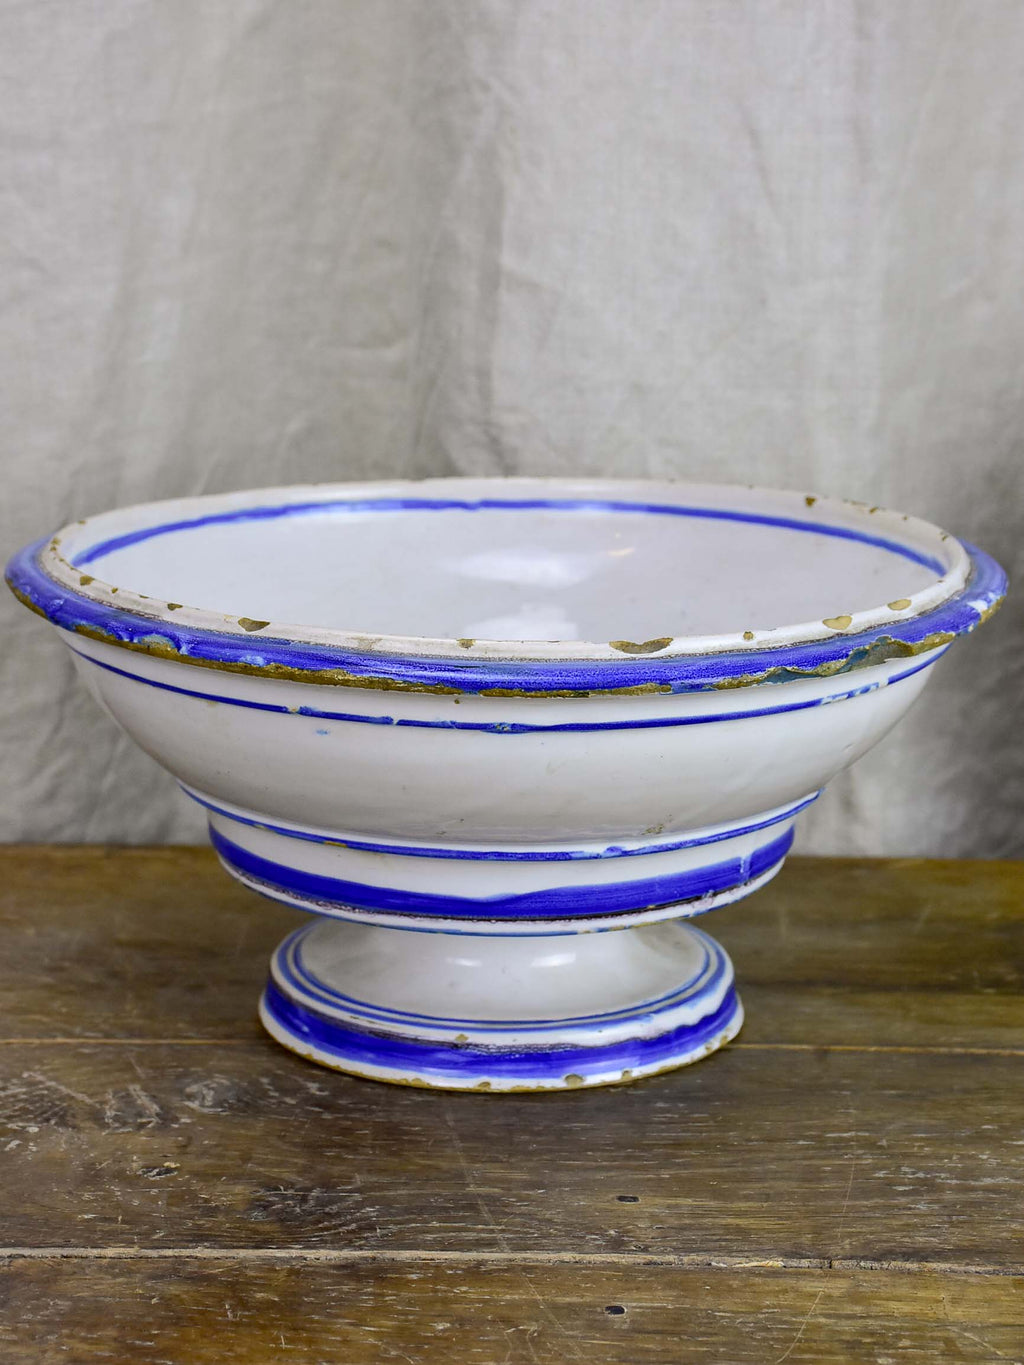 Antique fruit bowl with blue and white glaze